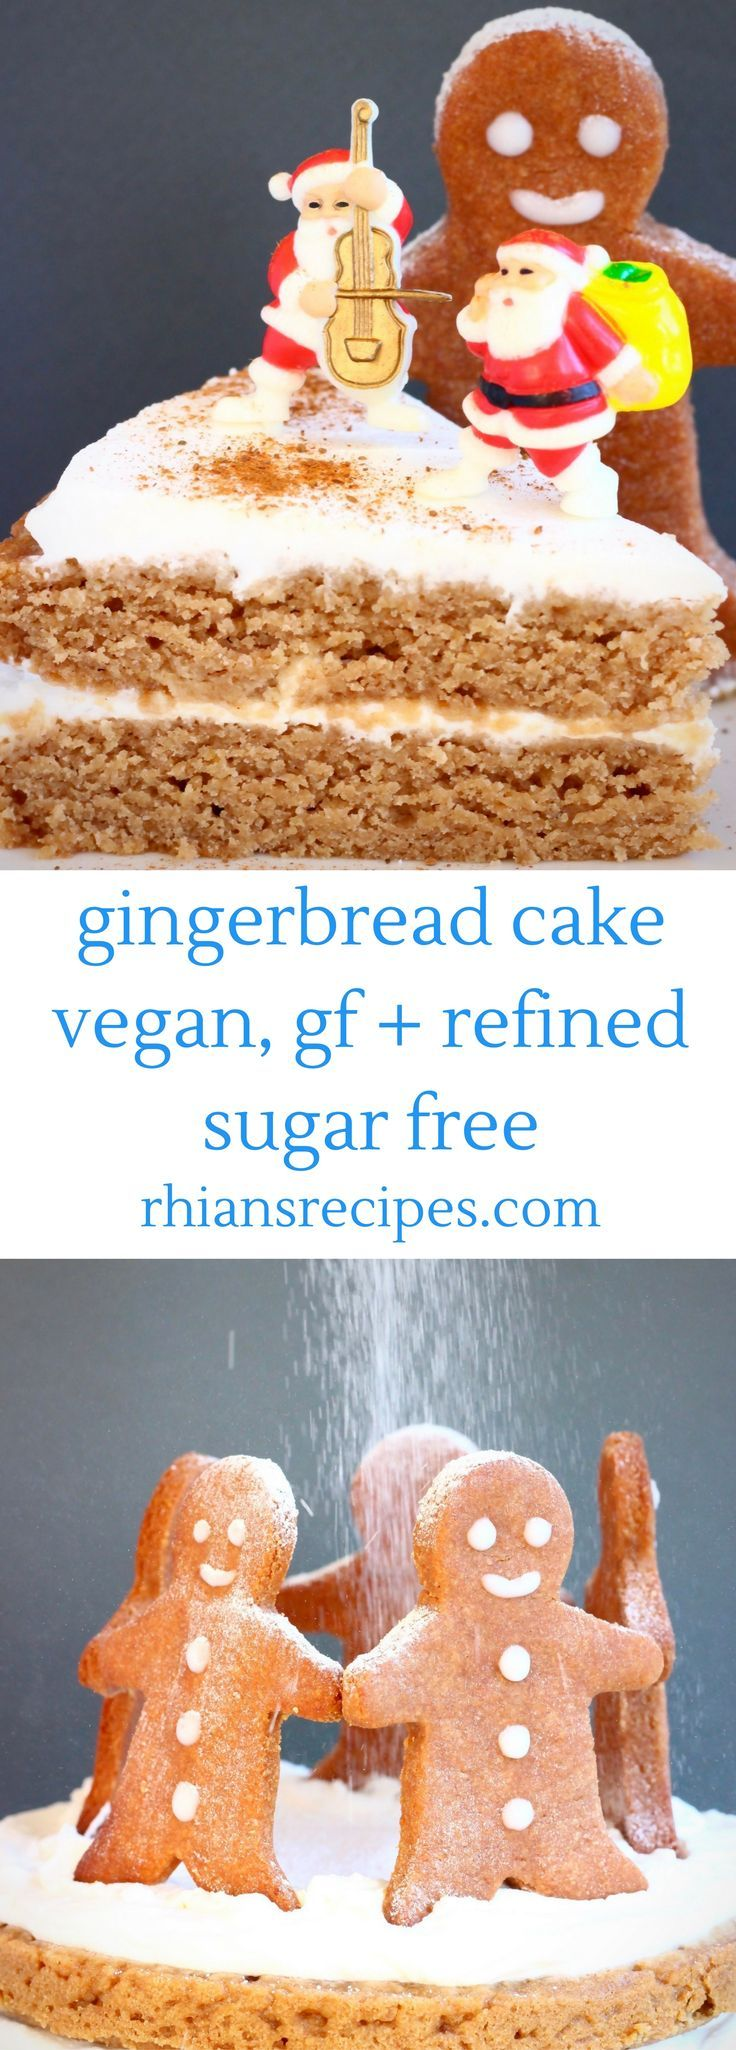 This Gluten-Free Vegan Gingerbread Cake is sweet and fragrant, covered in a delicious cream cheese frosting and perfect for the festive season! Also refined sugar free.